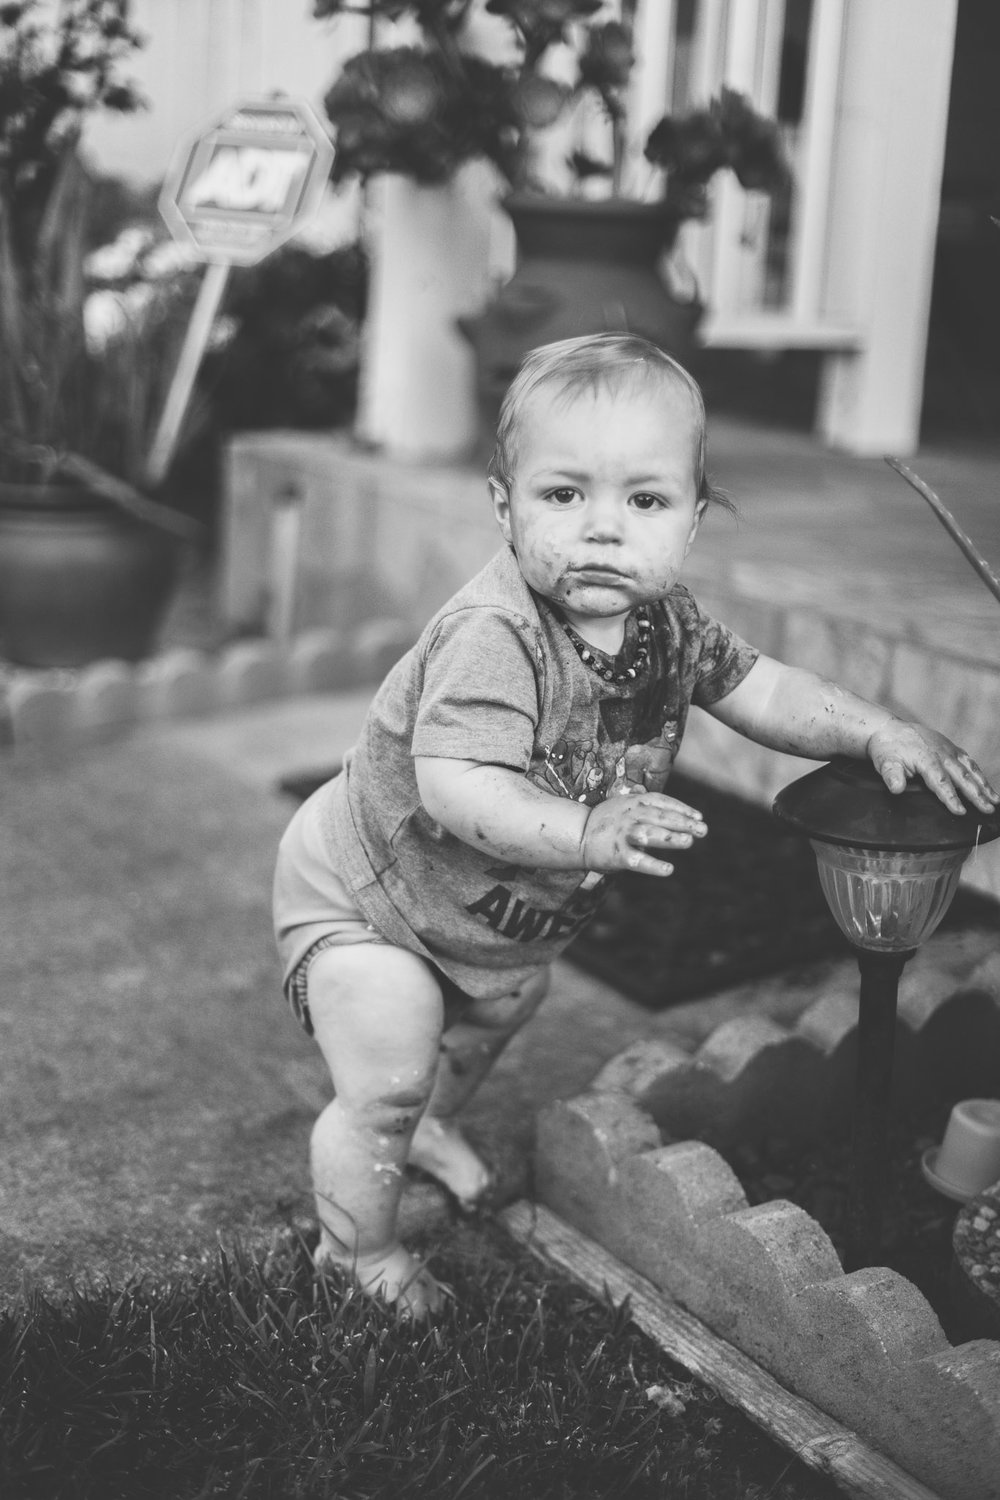 Archer_Inspired_Photography_Family_Photographer_Morgan_Hill_California-53.jpg